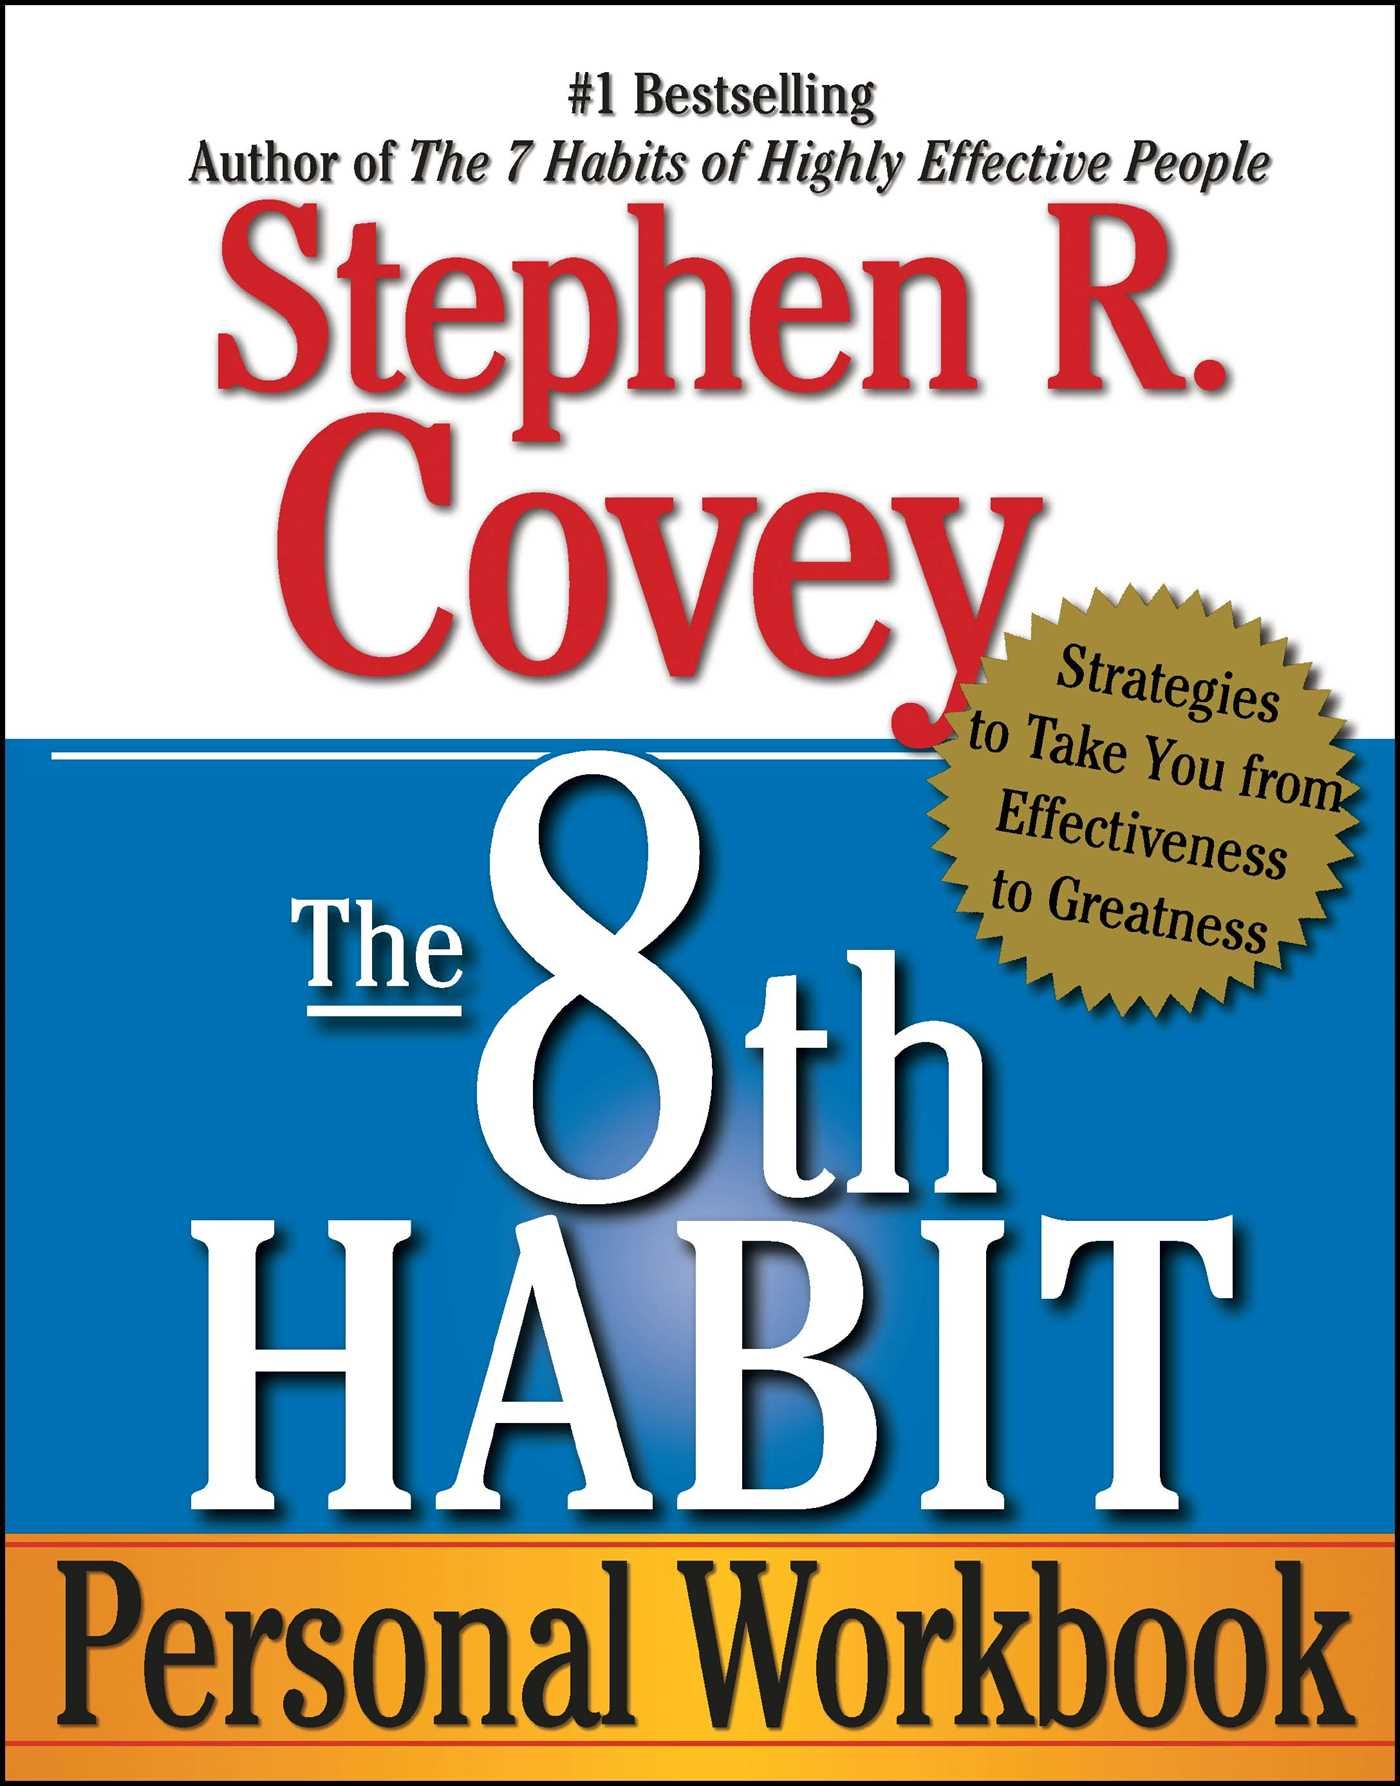 Download Ebook The 8th Habit by Stephen R. Covey Pdf